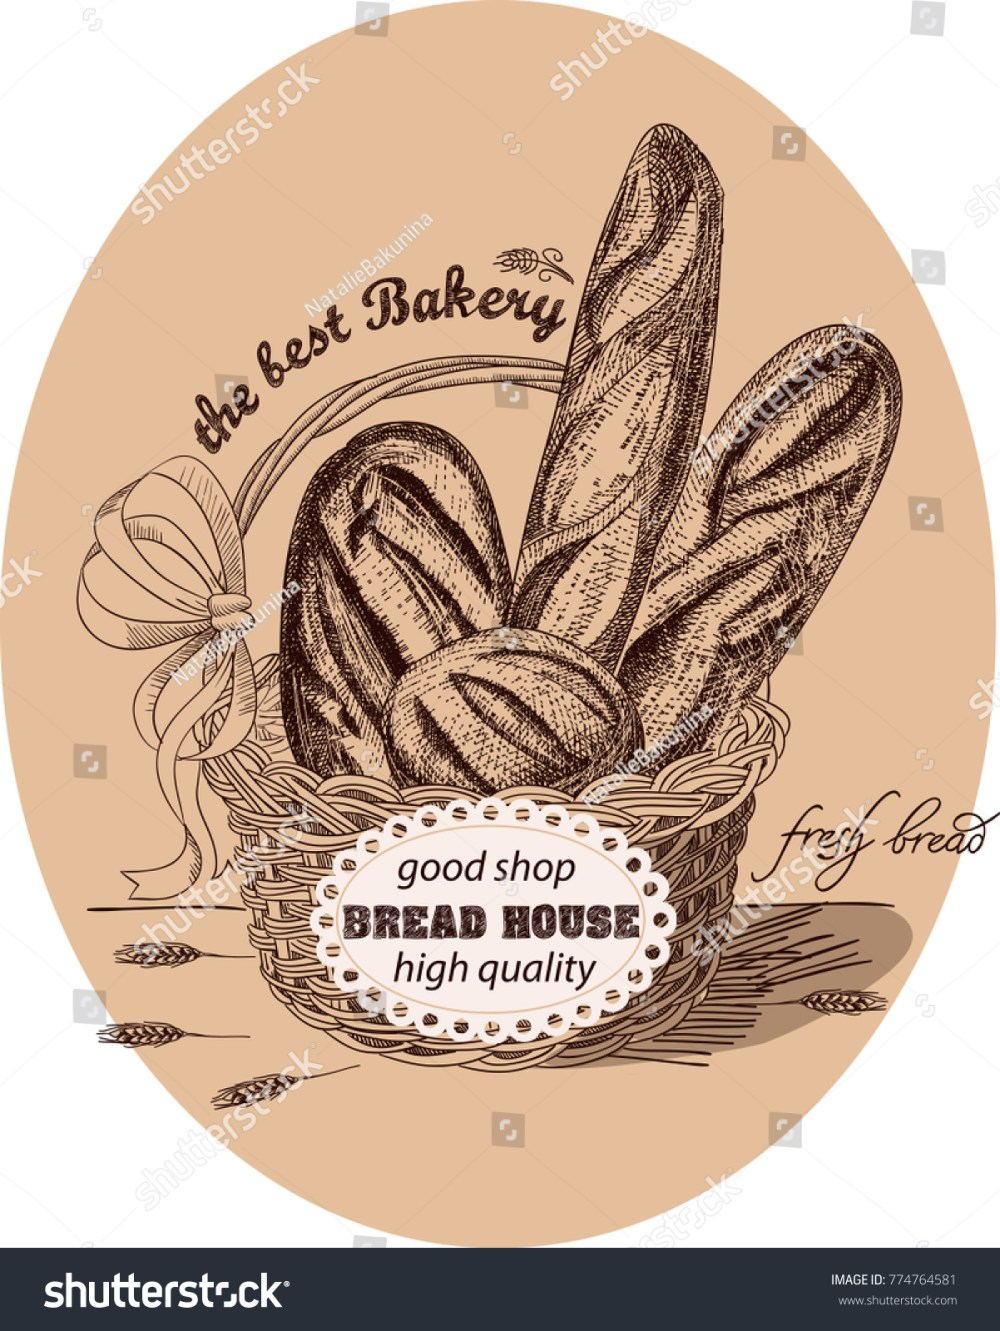 medium resolution of fresh bread in the basket with label the basket is decorated with a red bow and lable ears of wheat handmade sketch with monochrome colors vector